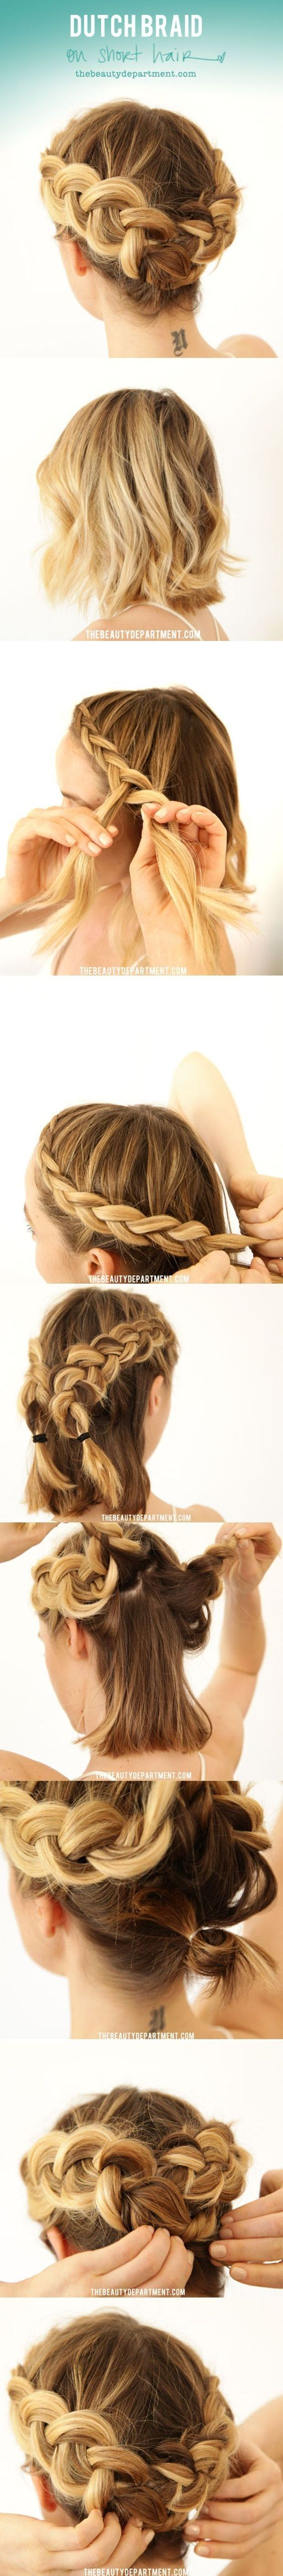 dutchbraid                                                                                                                                                                                 More